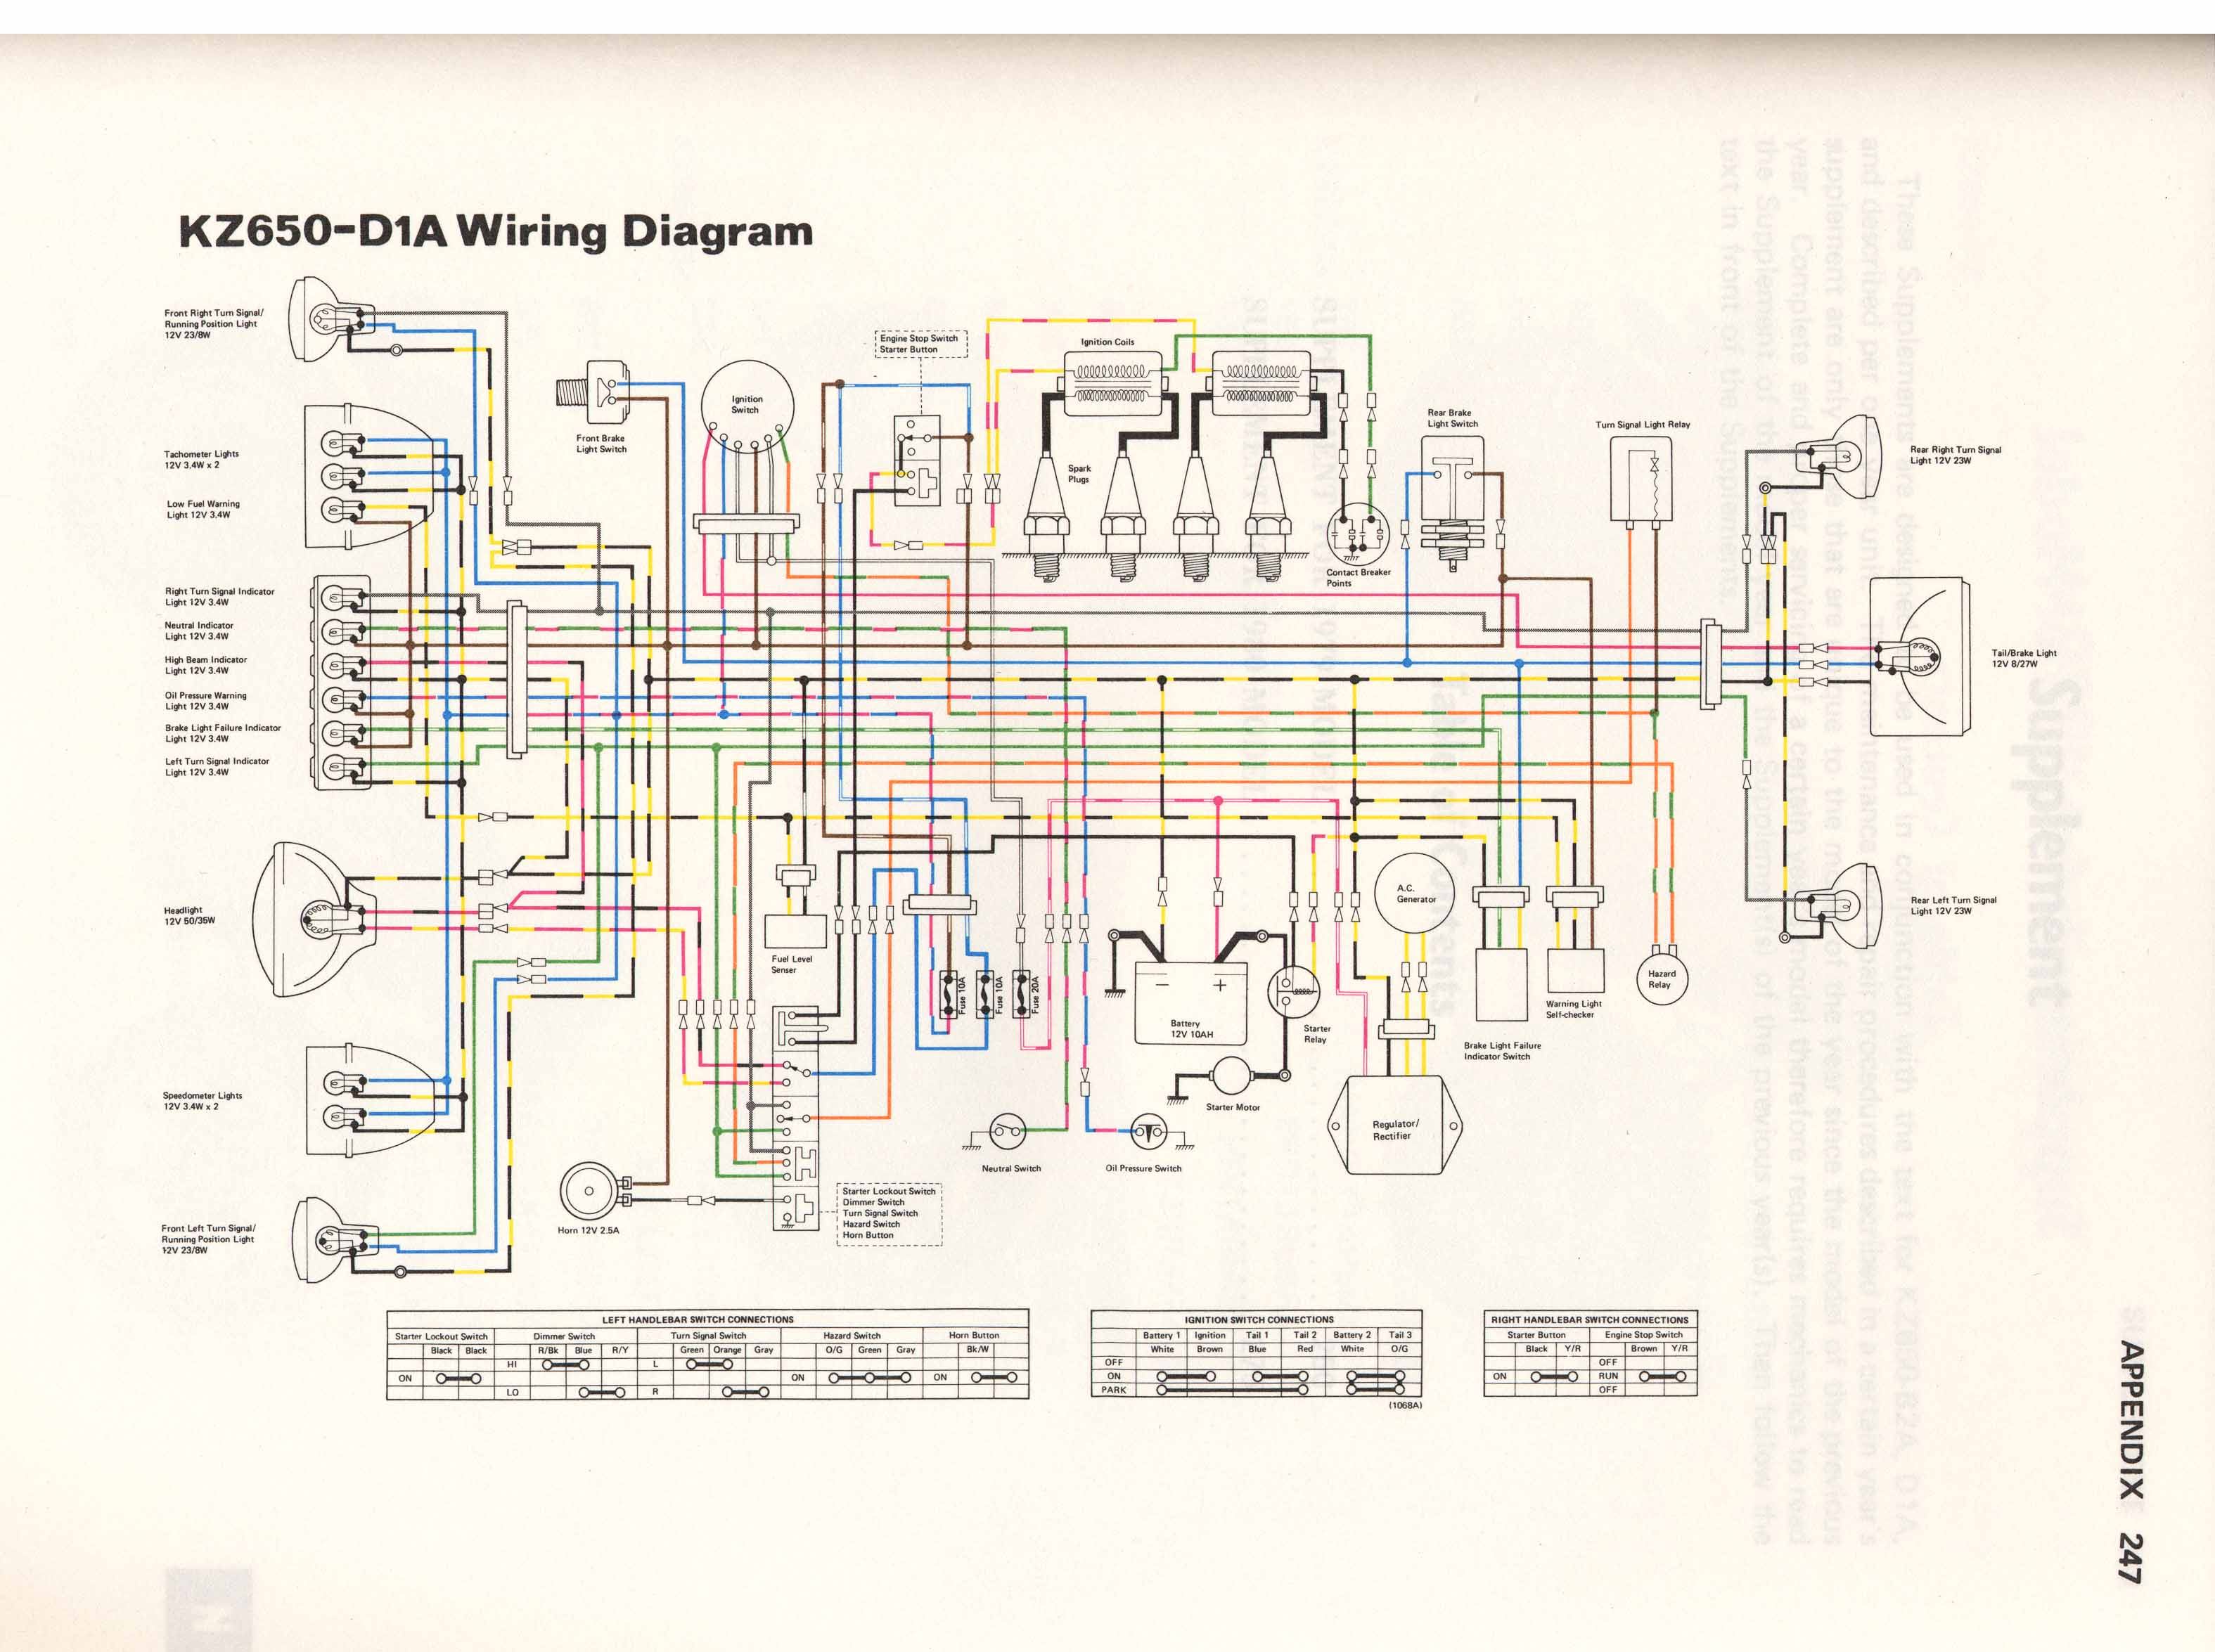 1978 Kawasaki Kz650 Wiring Diagram | Wiring Diagram